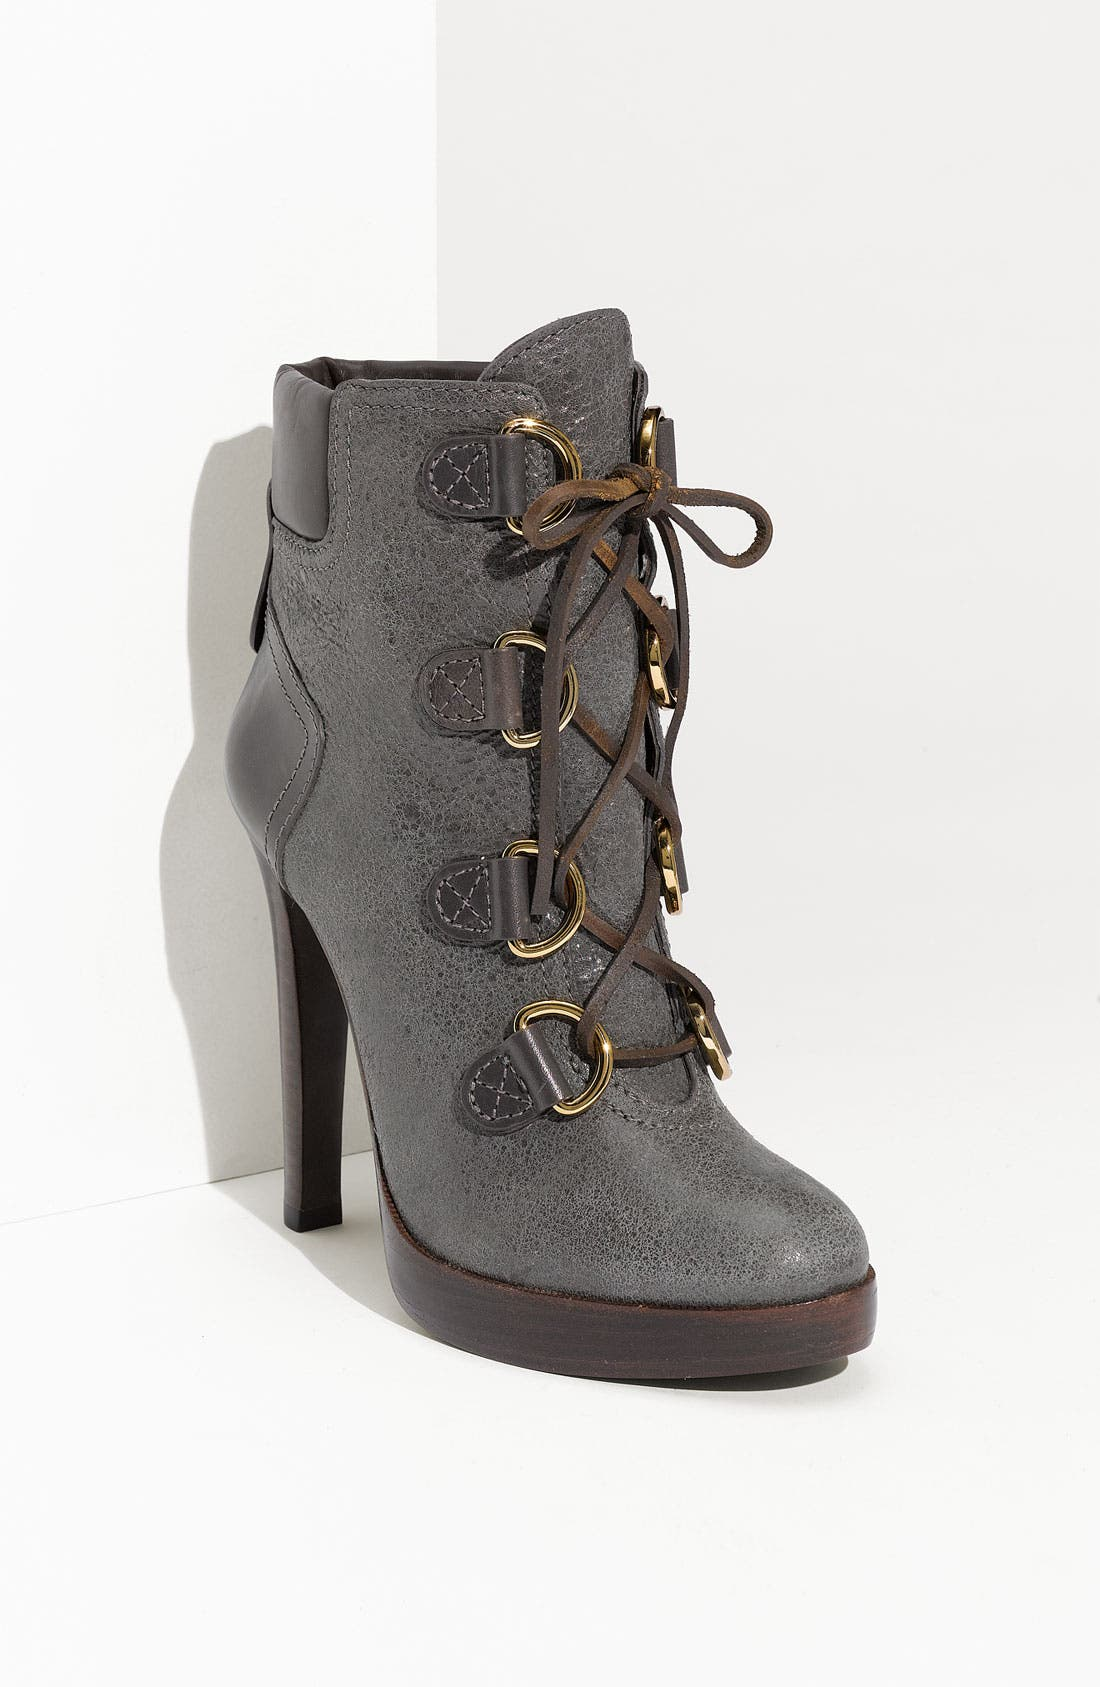 Main Image - Tory Burch 'Lawson' Bootie